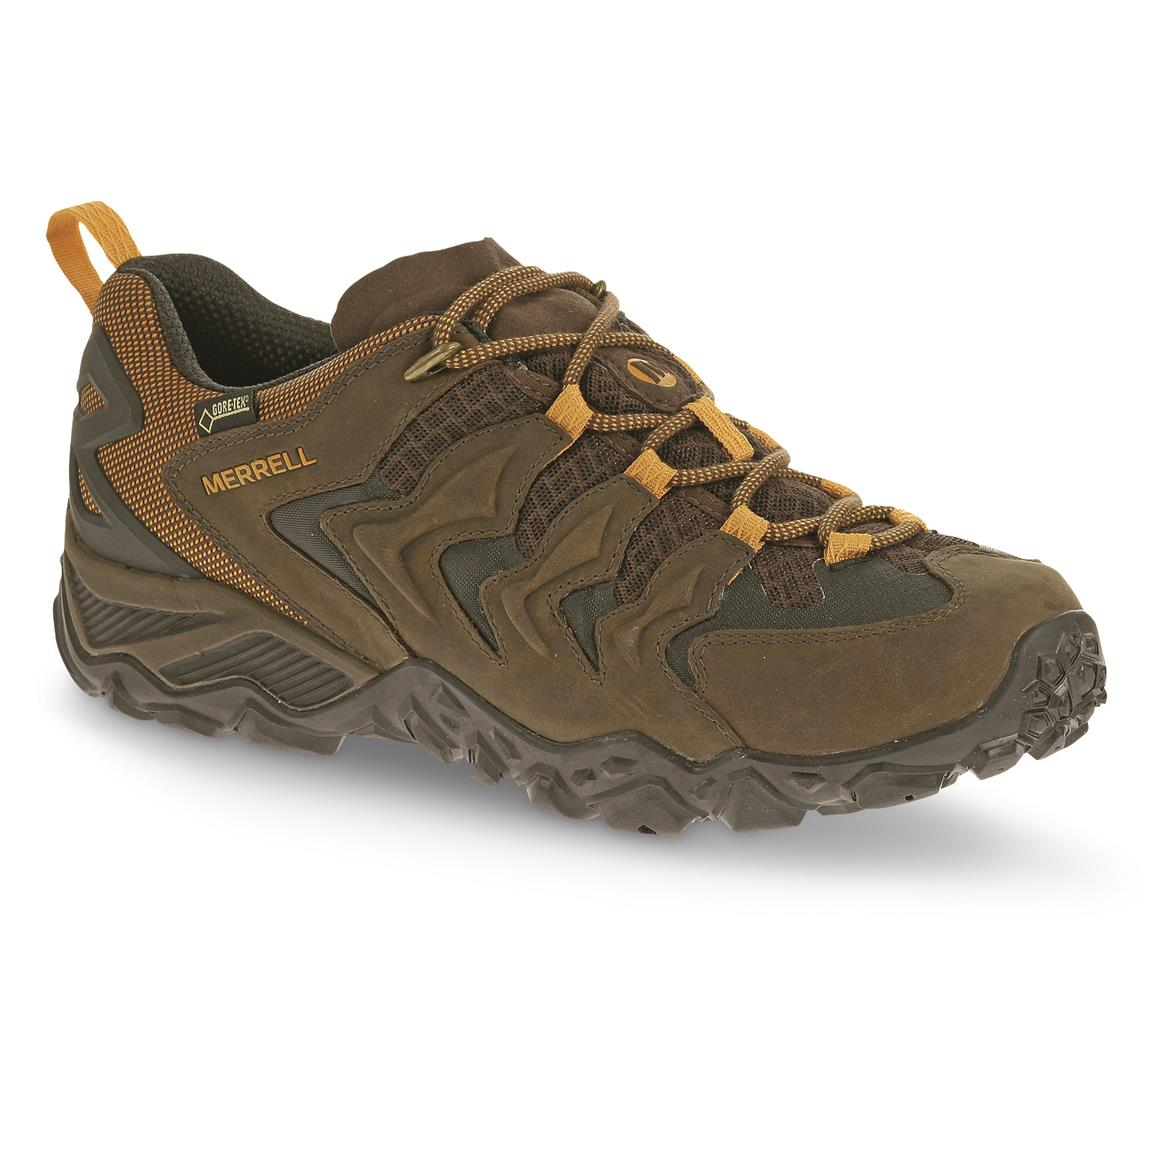 Merrell Chameleon Shift Ventilator Hiking Shoes, Waterproof, Bitter Root